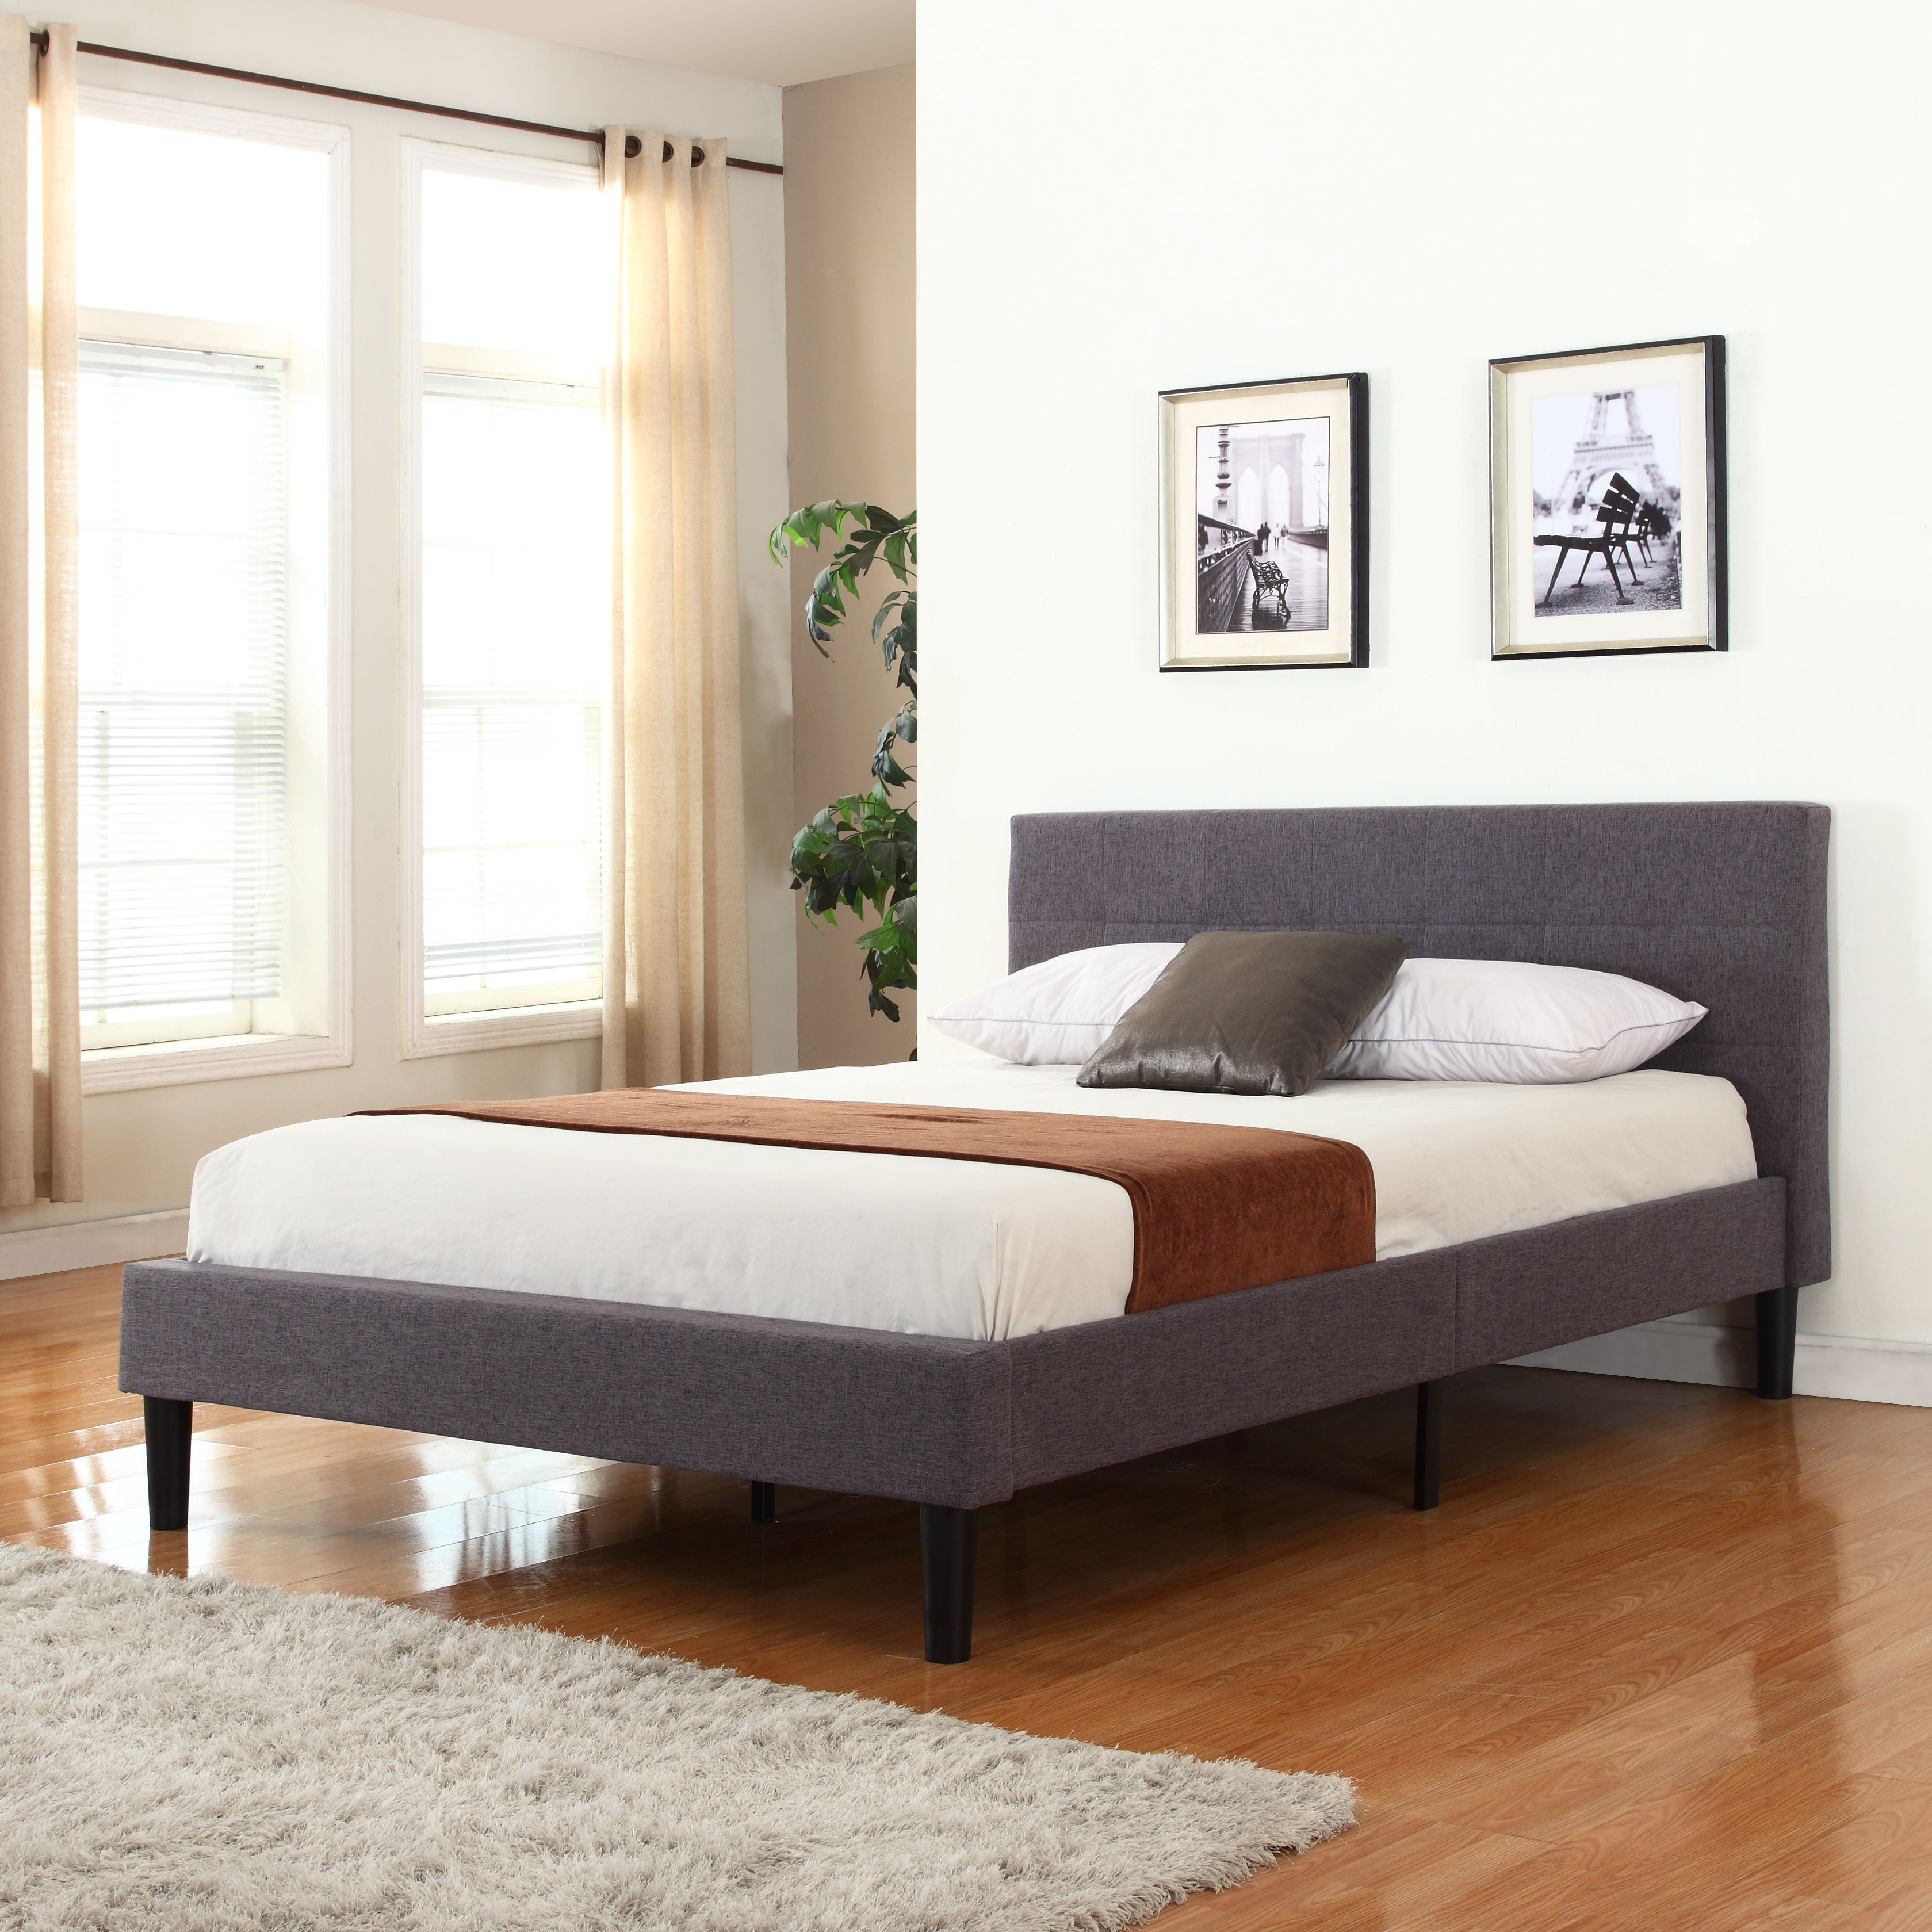 classic yet modern bed frame with grey linen fabric headboard is  - classic yet modern bed frame with grey linen fabric headboard isupholstered in same linen